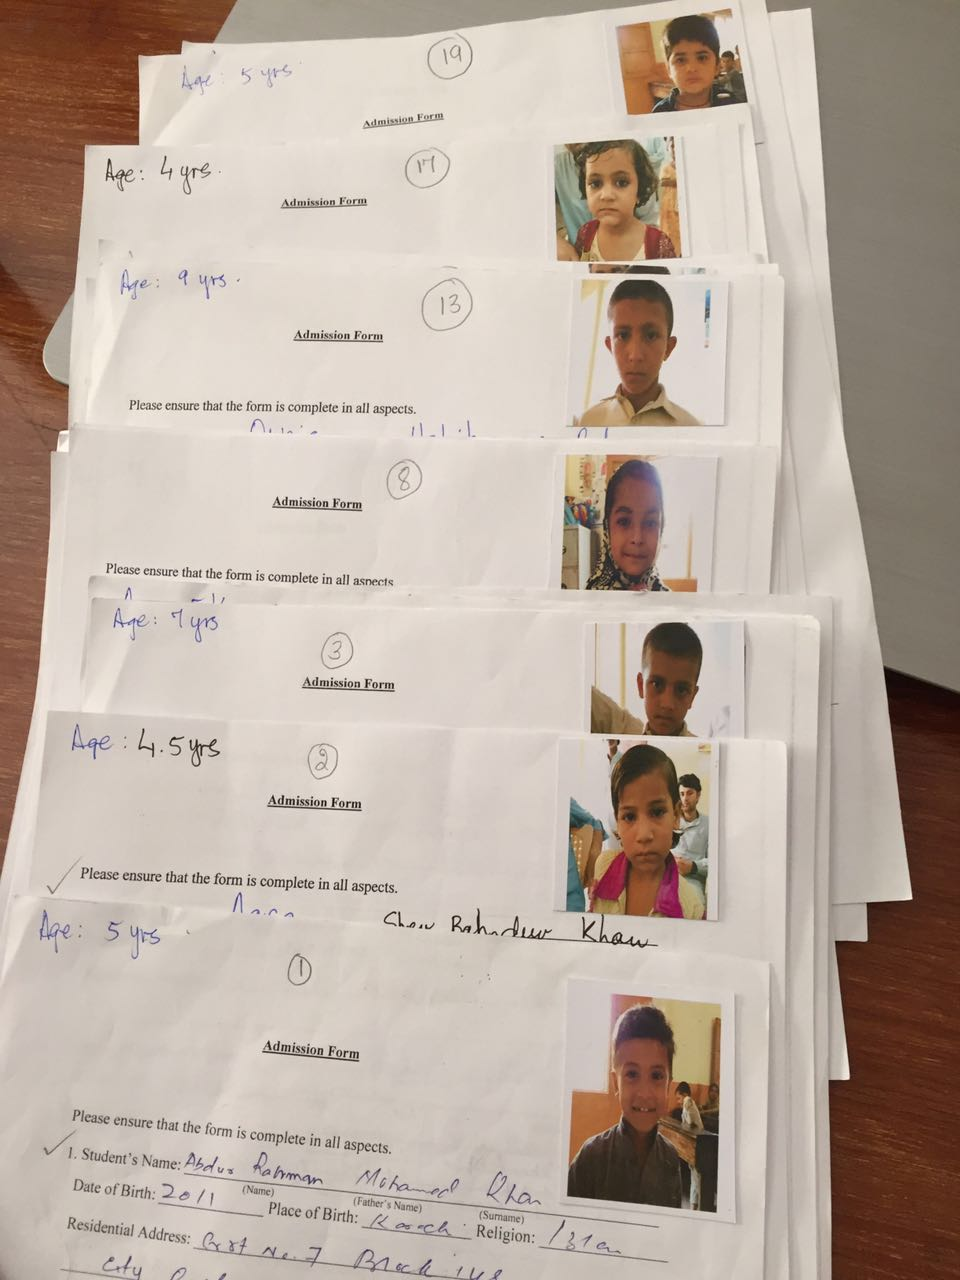 Children's admission forms